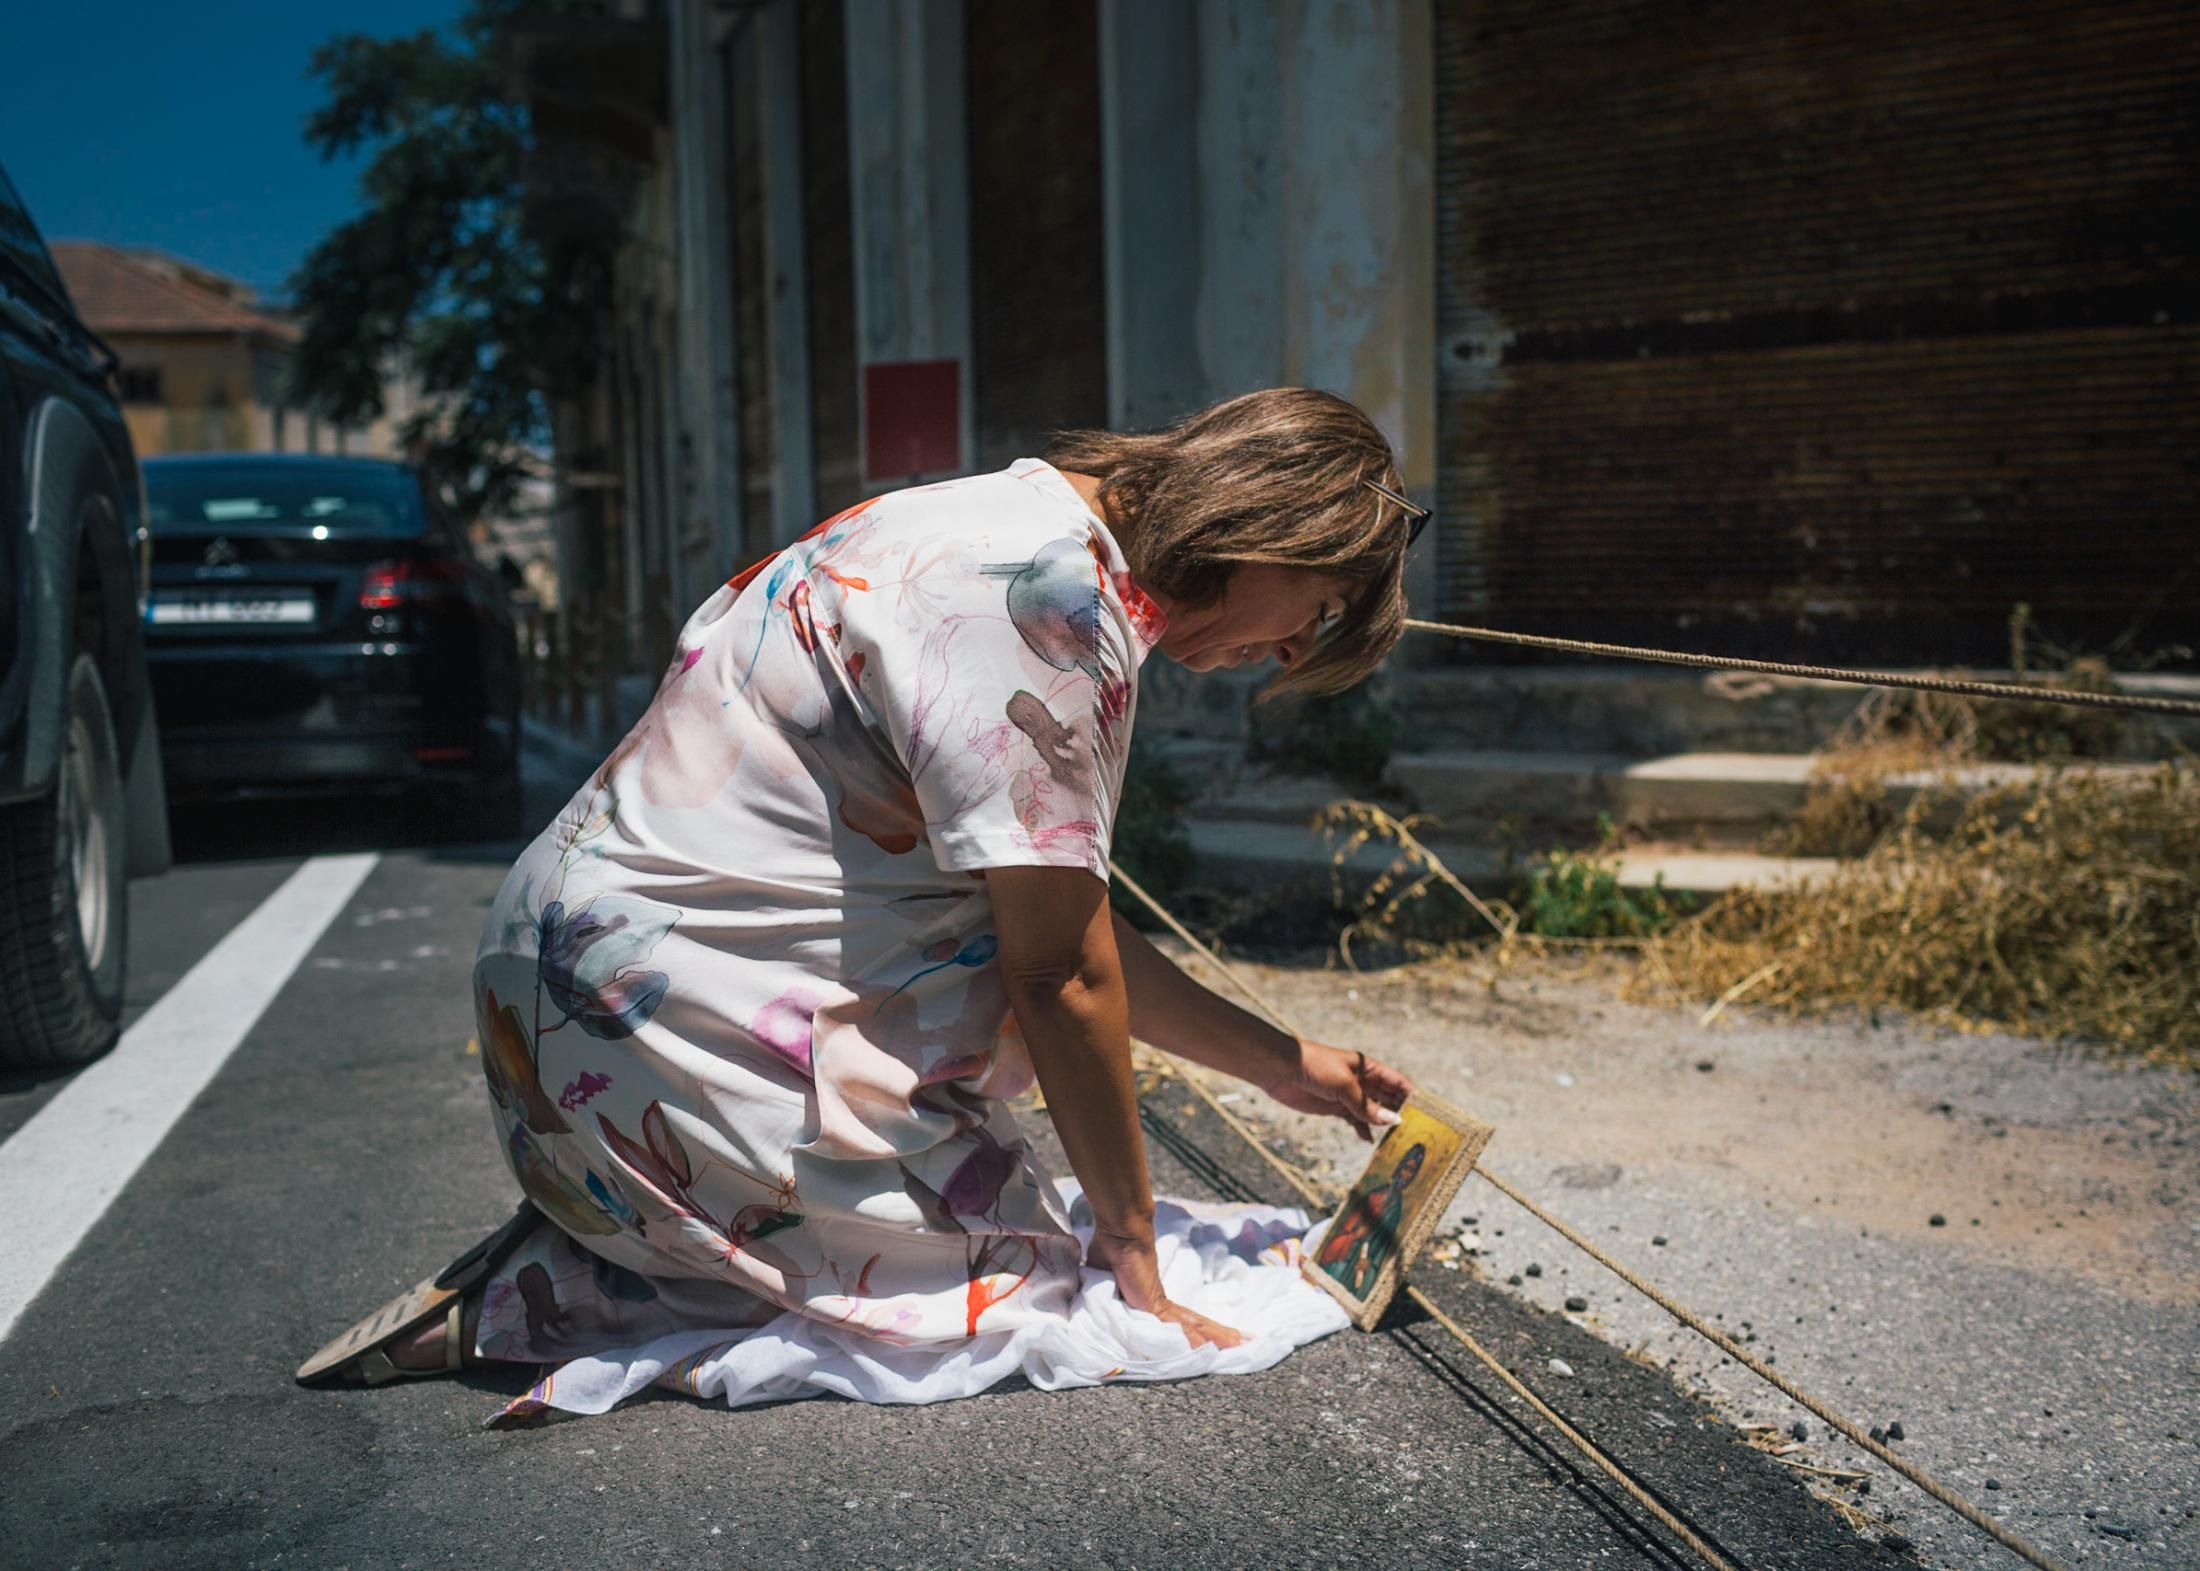 Tasoula Hadjitofi prays in front of the barrier of a former church in the ghost town, as a protest against the visit of President Erdogan.